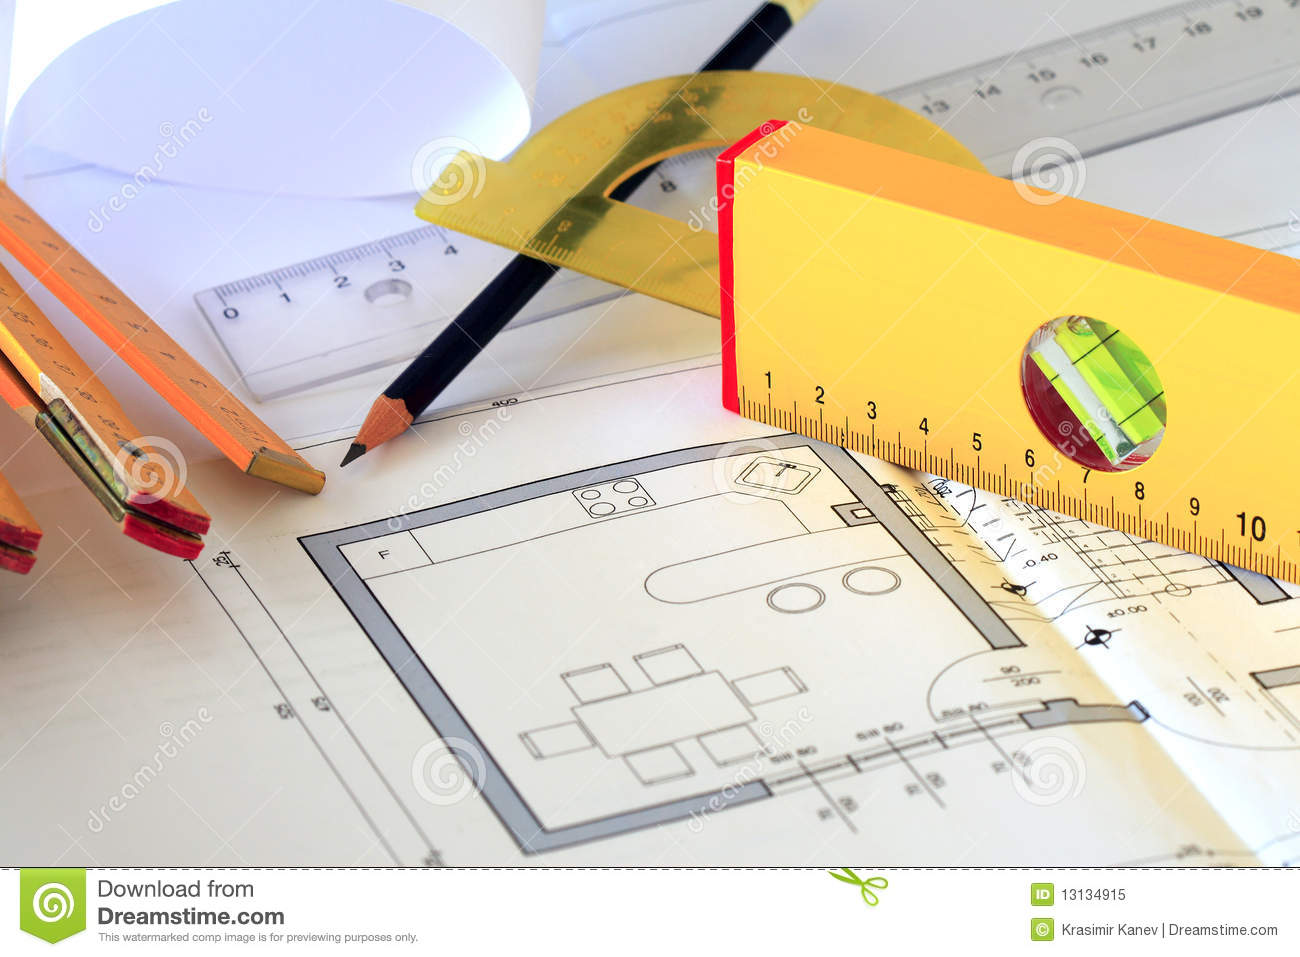 Architectural Drawings And Tools Royalty Free Stock Photo Image 13134915